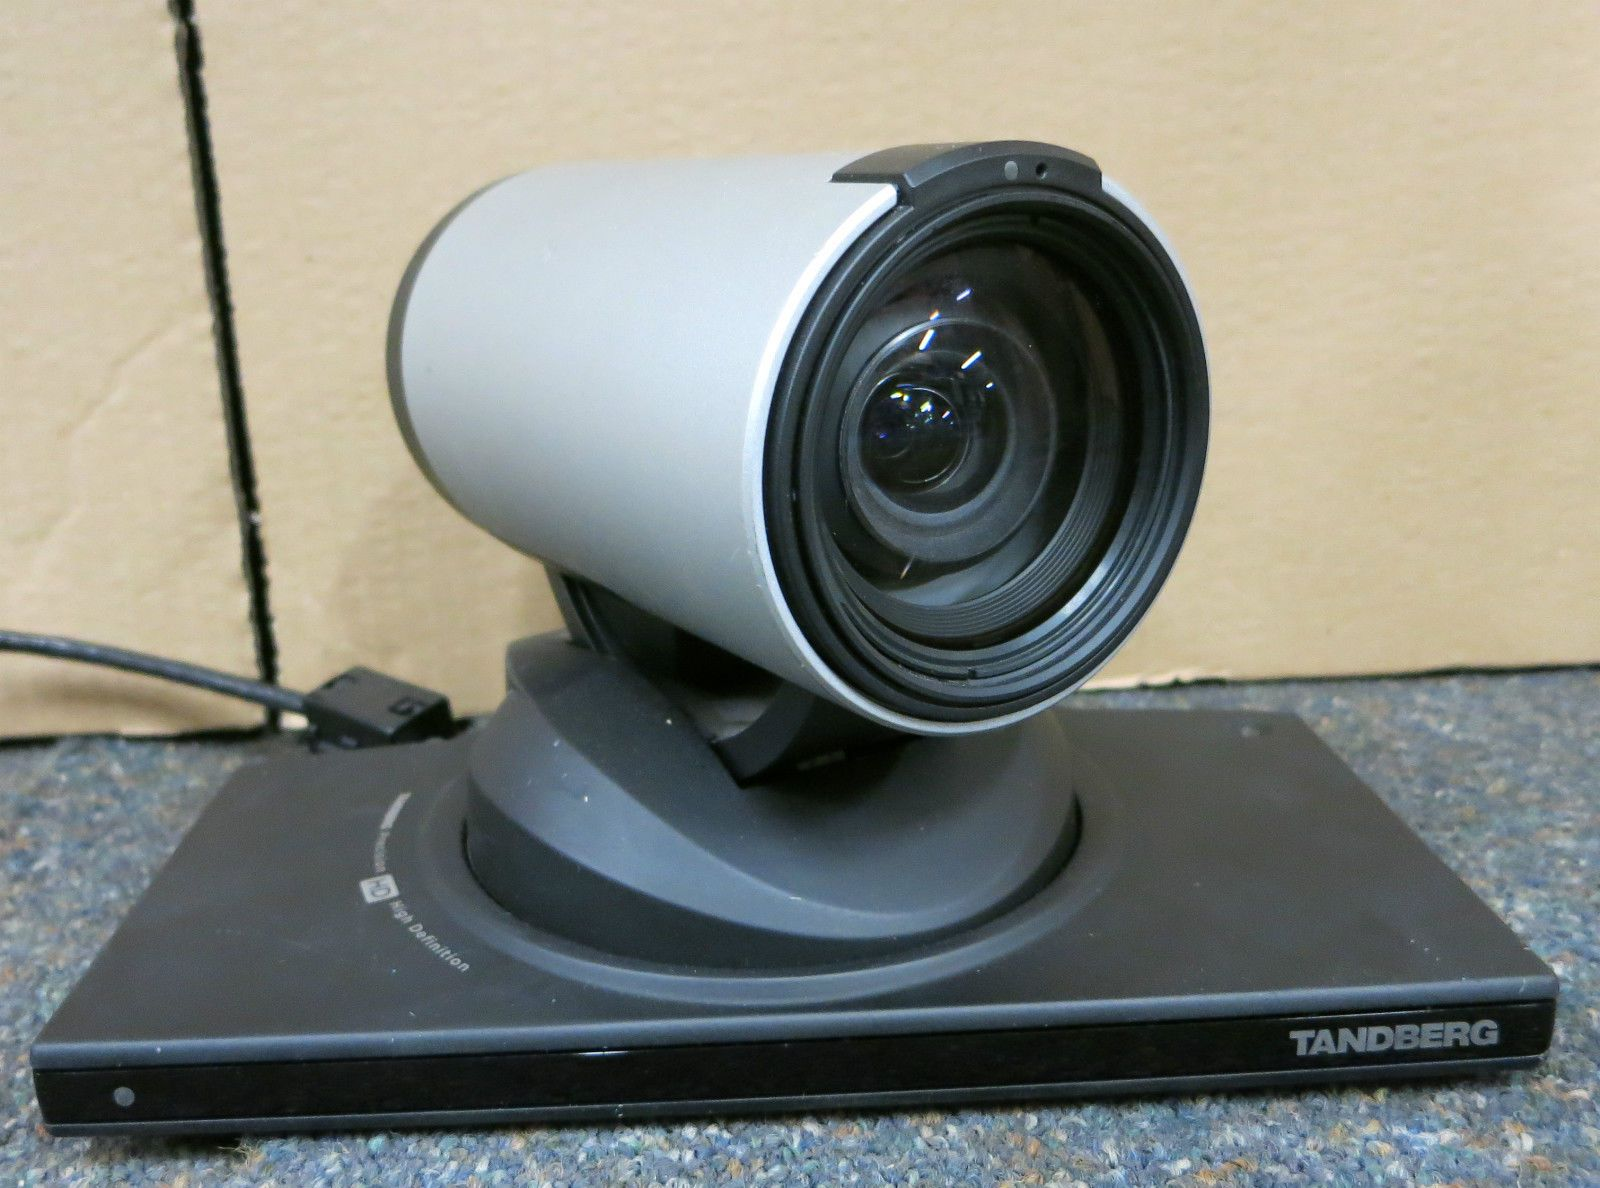 Cisco Tandberg Edge 95 MXP HD Video Conferencing System Telepresence Multisite